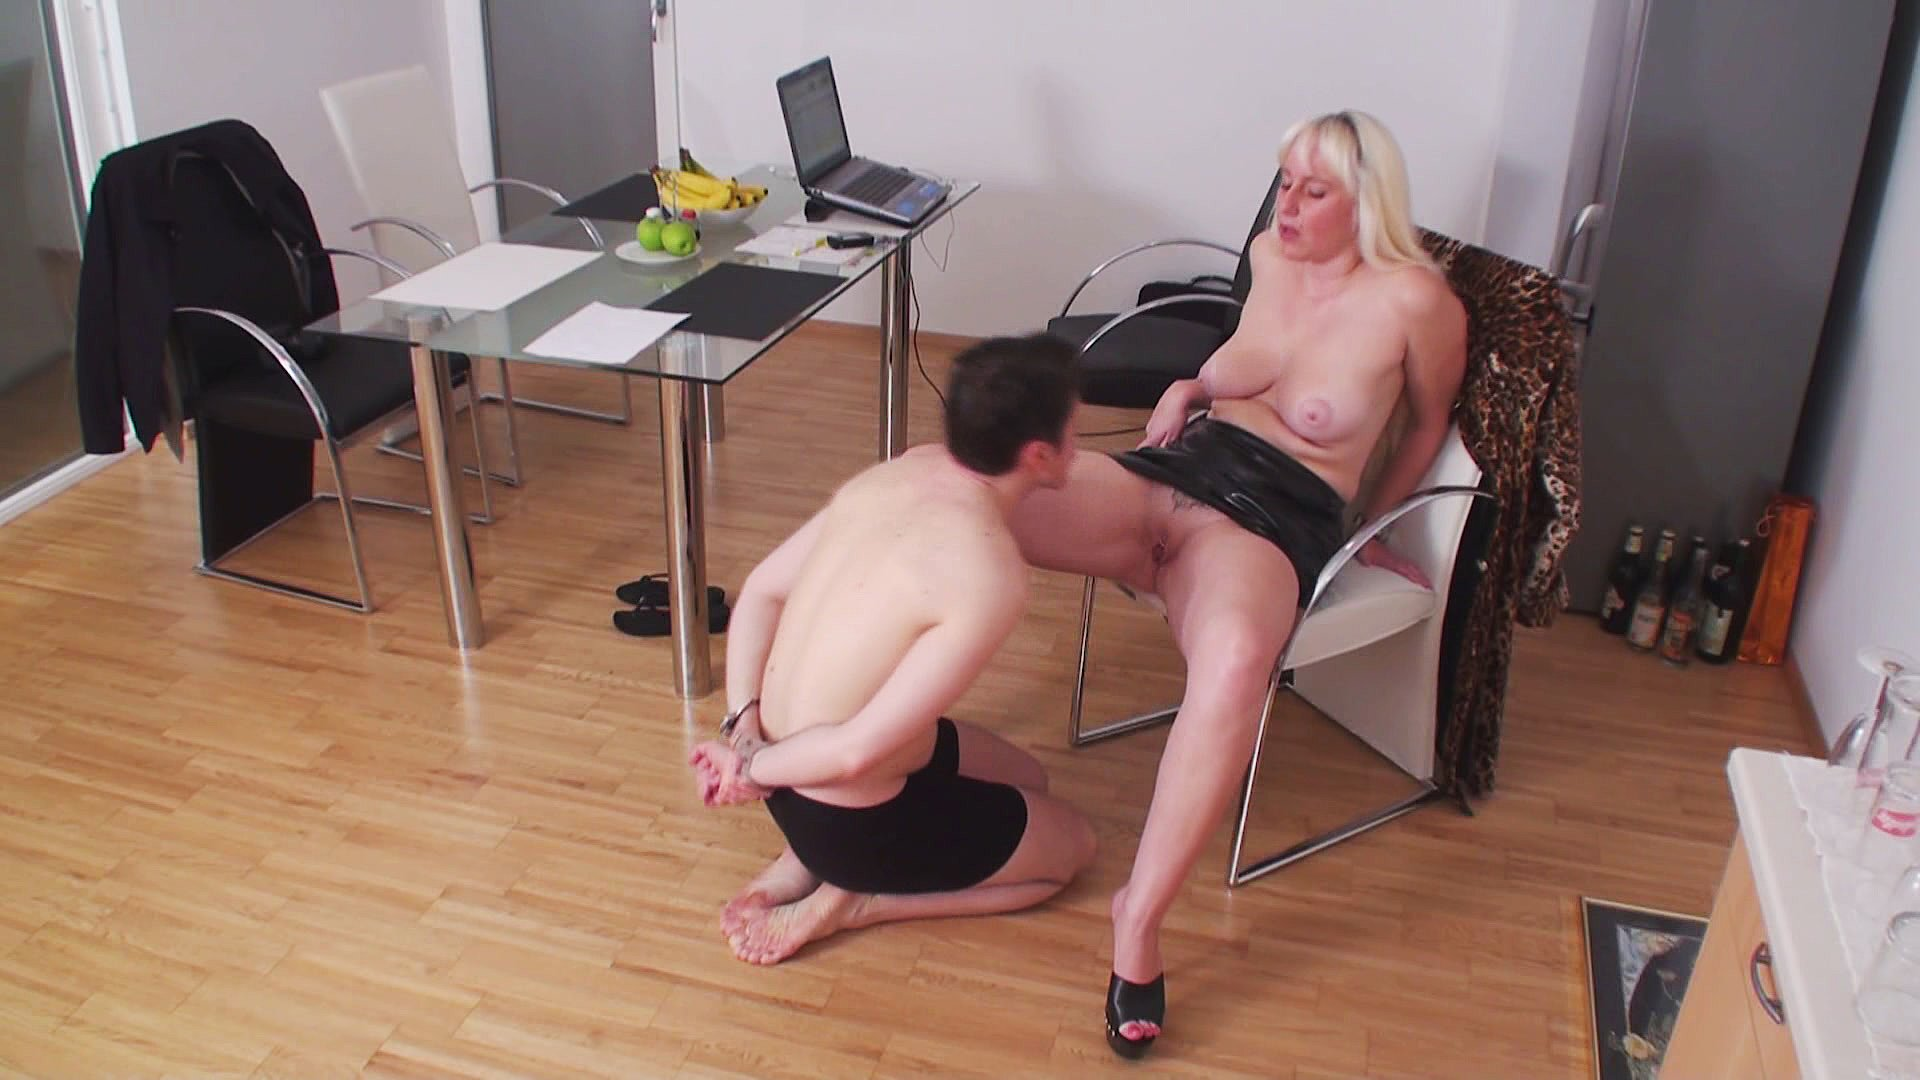 Roches recommends Big fat bbw anal